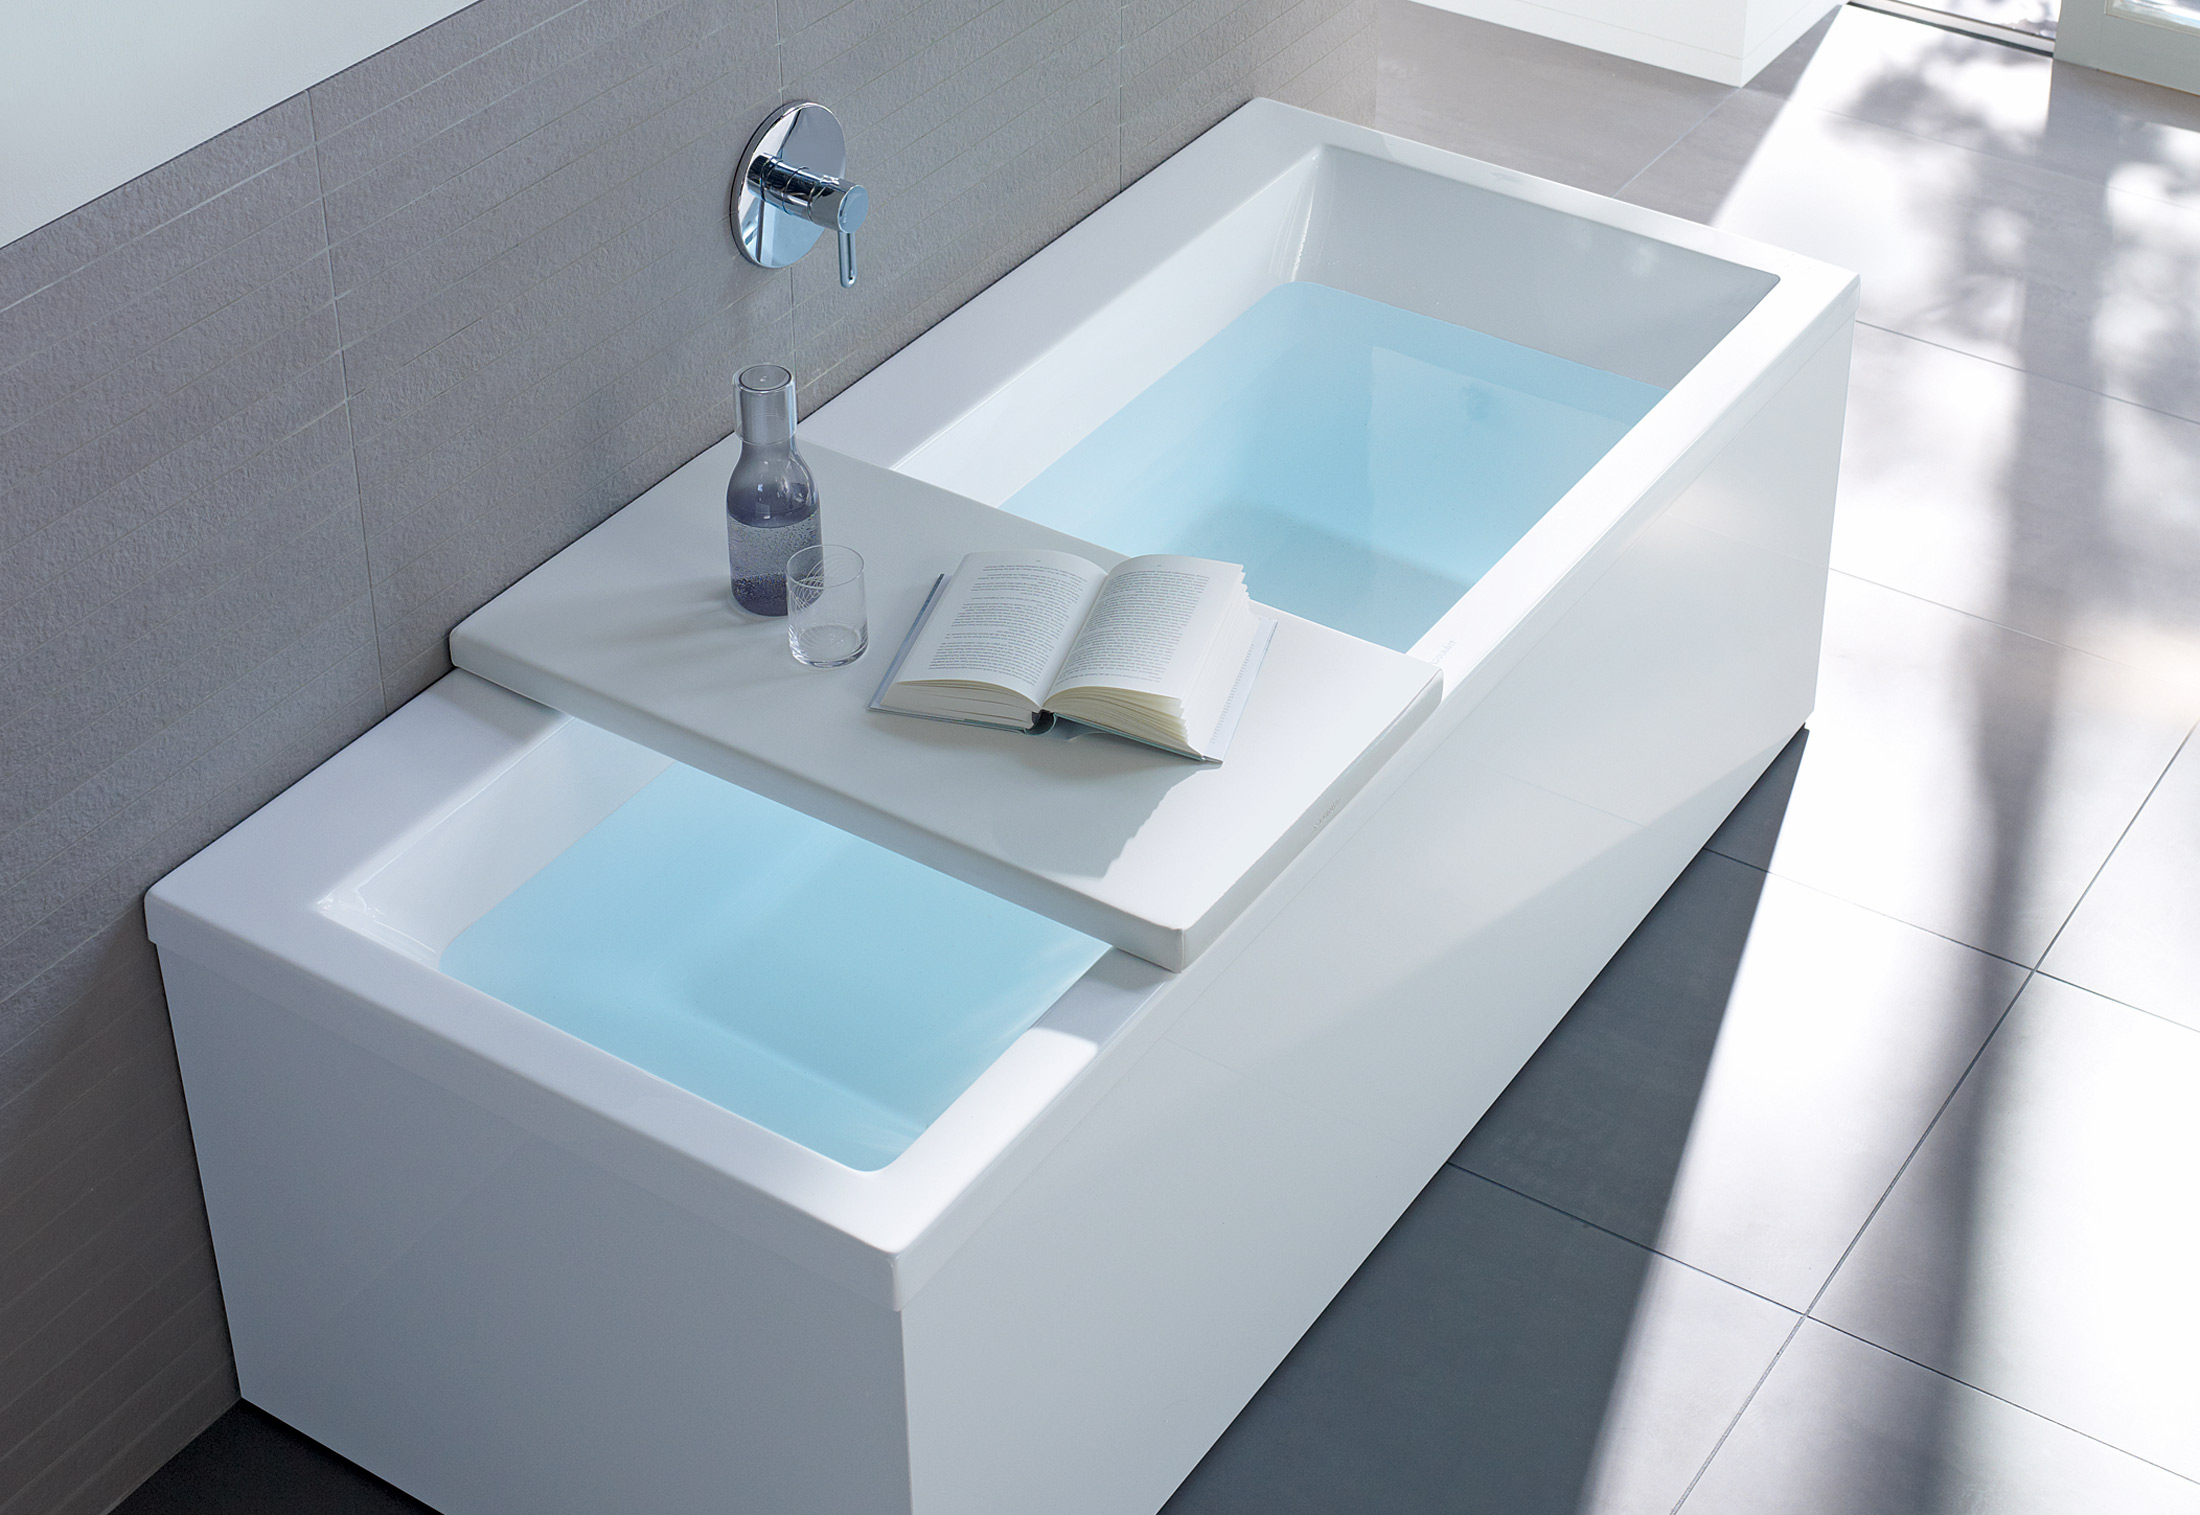 duravit cfm render obj photorealistic search turbosquid and d models code tub bathtub com textures index